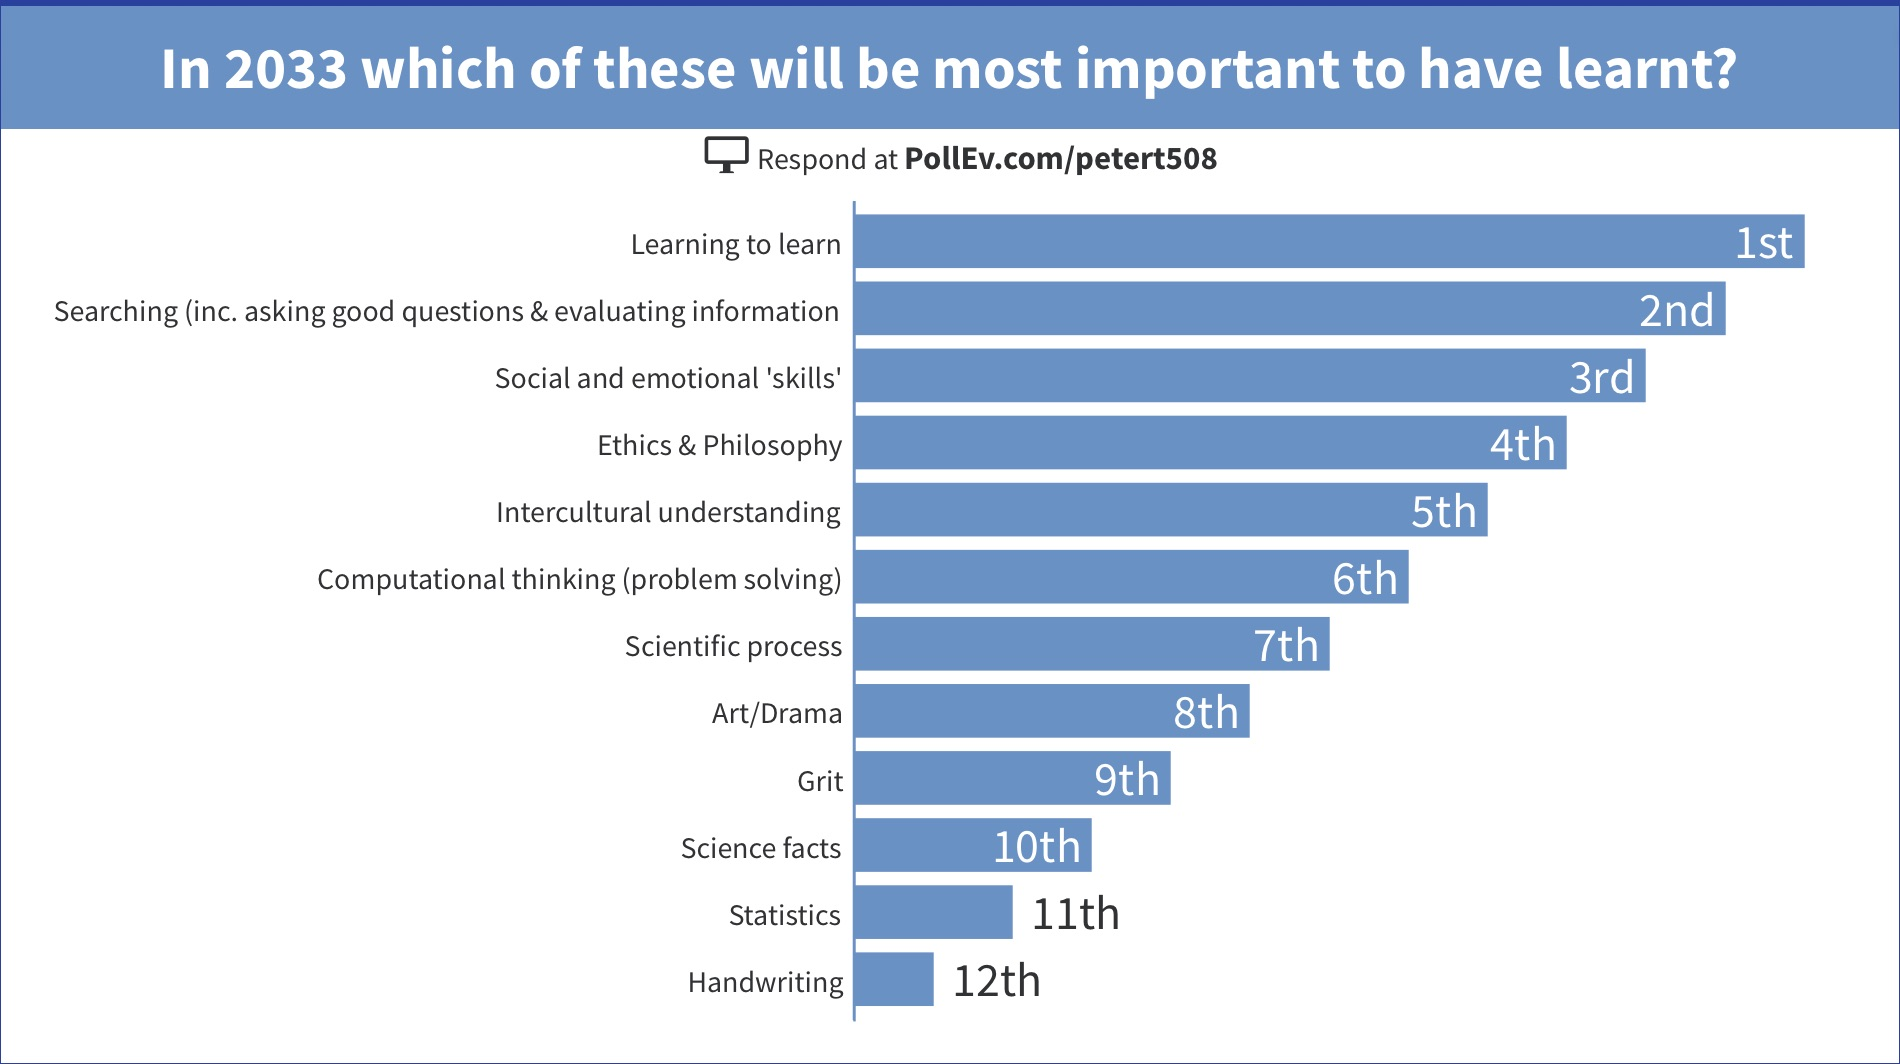 Chart showing how 59 participants ranked the importance of a range of possible learning outcomes in 2033